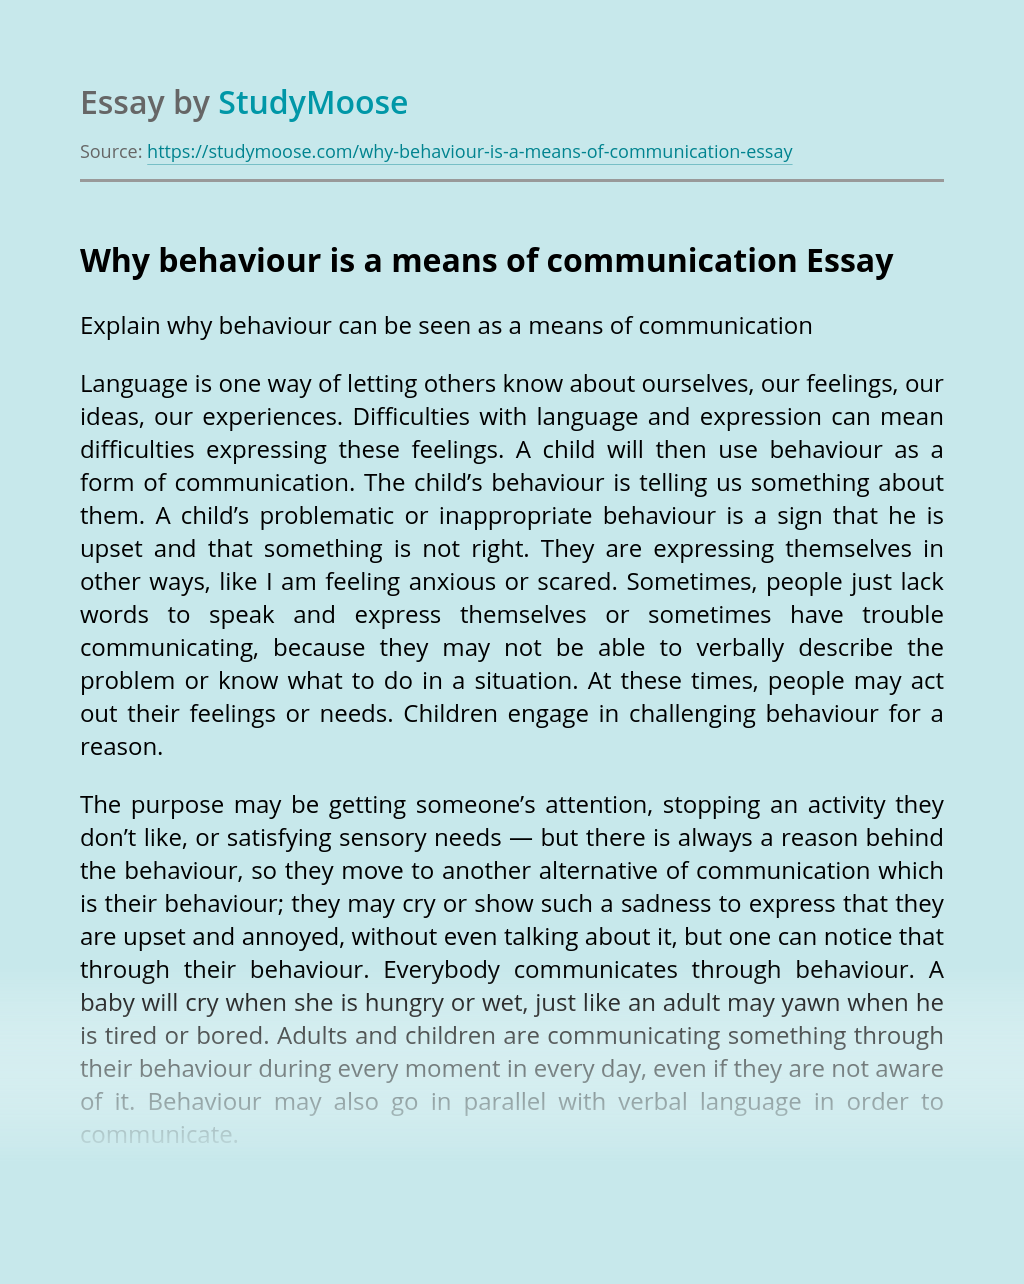 Why behaviour is a means of communication